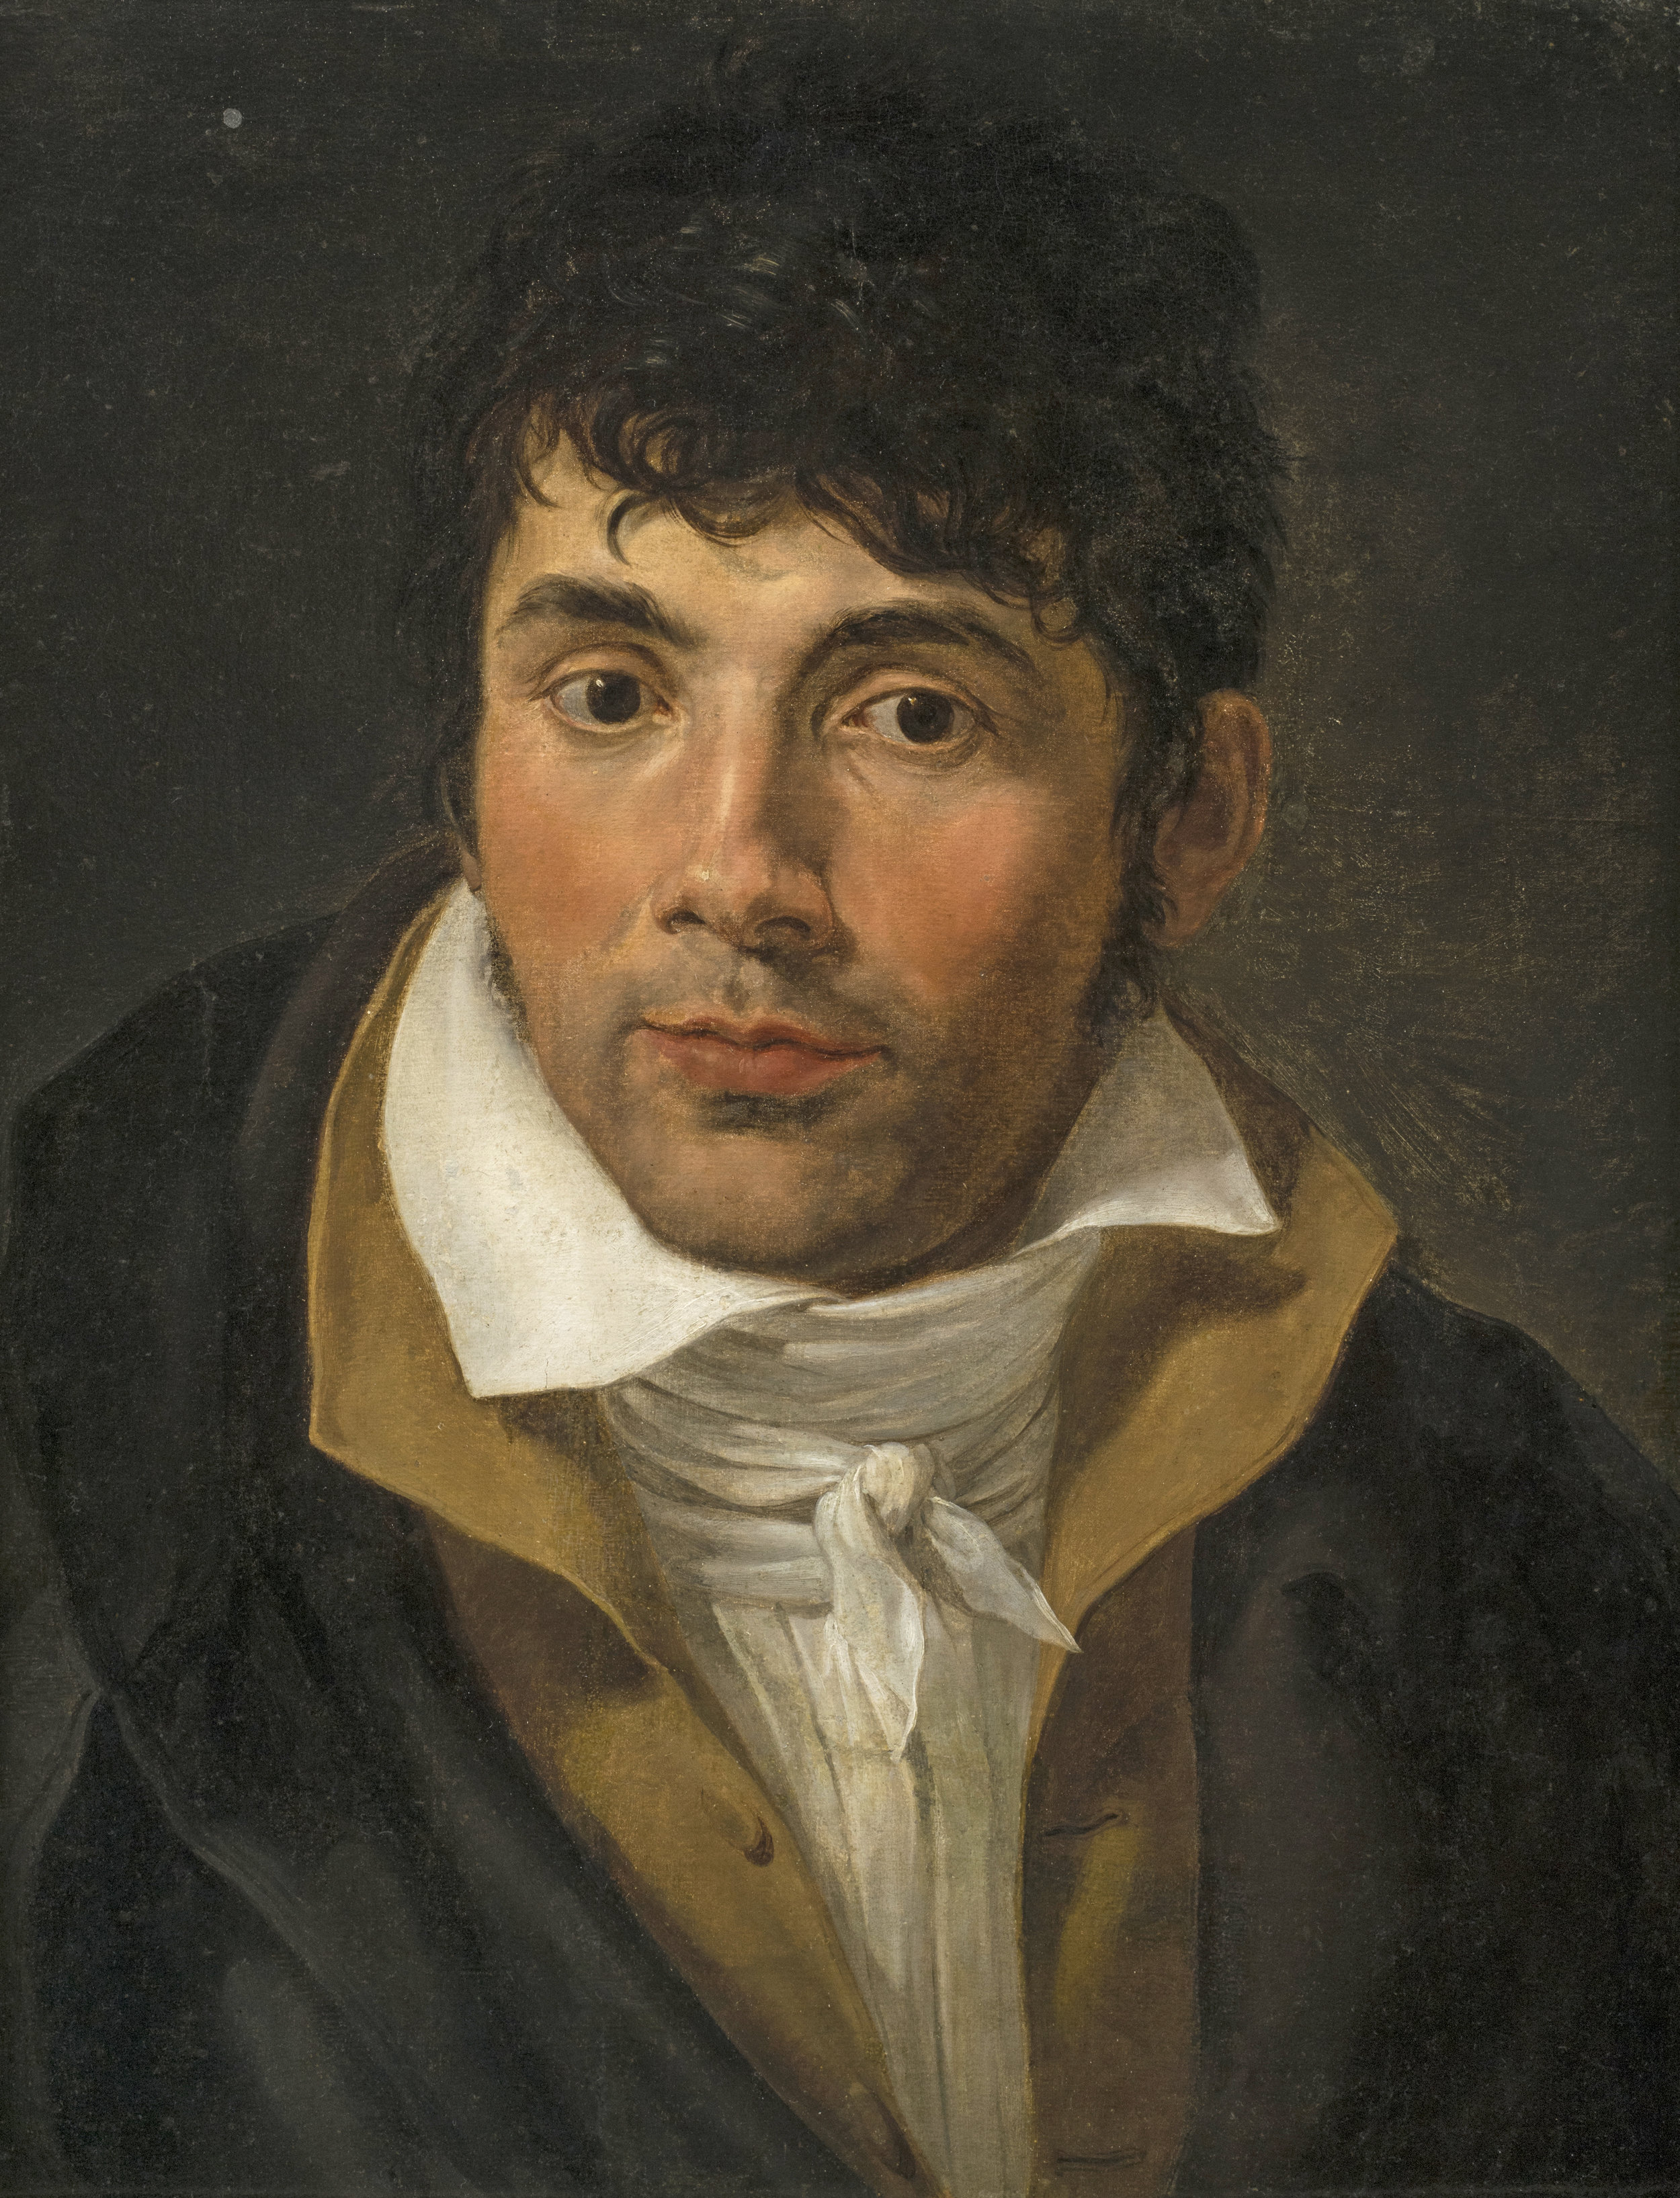 David School  (18th century)  Portrait of a Man  17 ⅛ x 13 ¾ in. oil on canvas